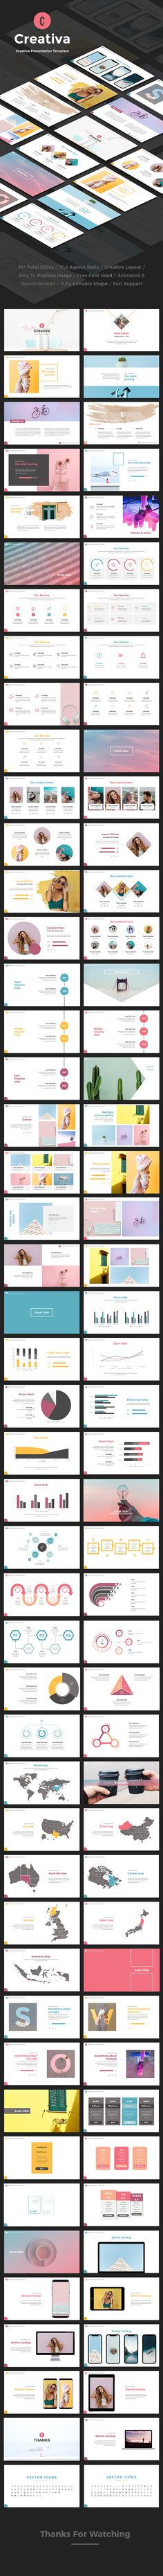 Buy Creativa Keynote by pixelbob on GraphicRiver. Features: Total Slides 400 Vector Icon Animated Template Smart and Innovative Presentation Slides Modern layouts. Best Powerpoint Presentations, Powerpoint Tips, Creative Powerpoint Templates, Powerpoint Presentation Templates, Keynote Template, Professional Presentation, Presentation Slides, Corporate Presentation, Graphic Design Pattern